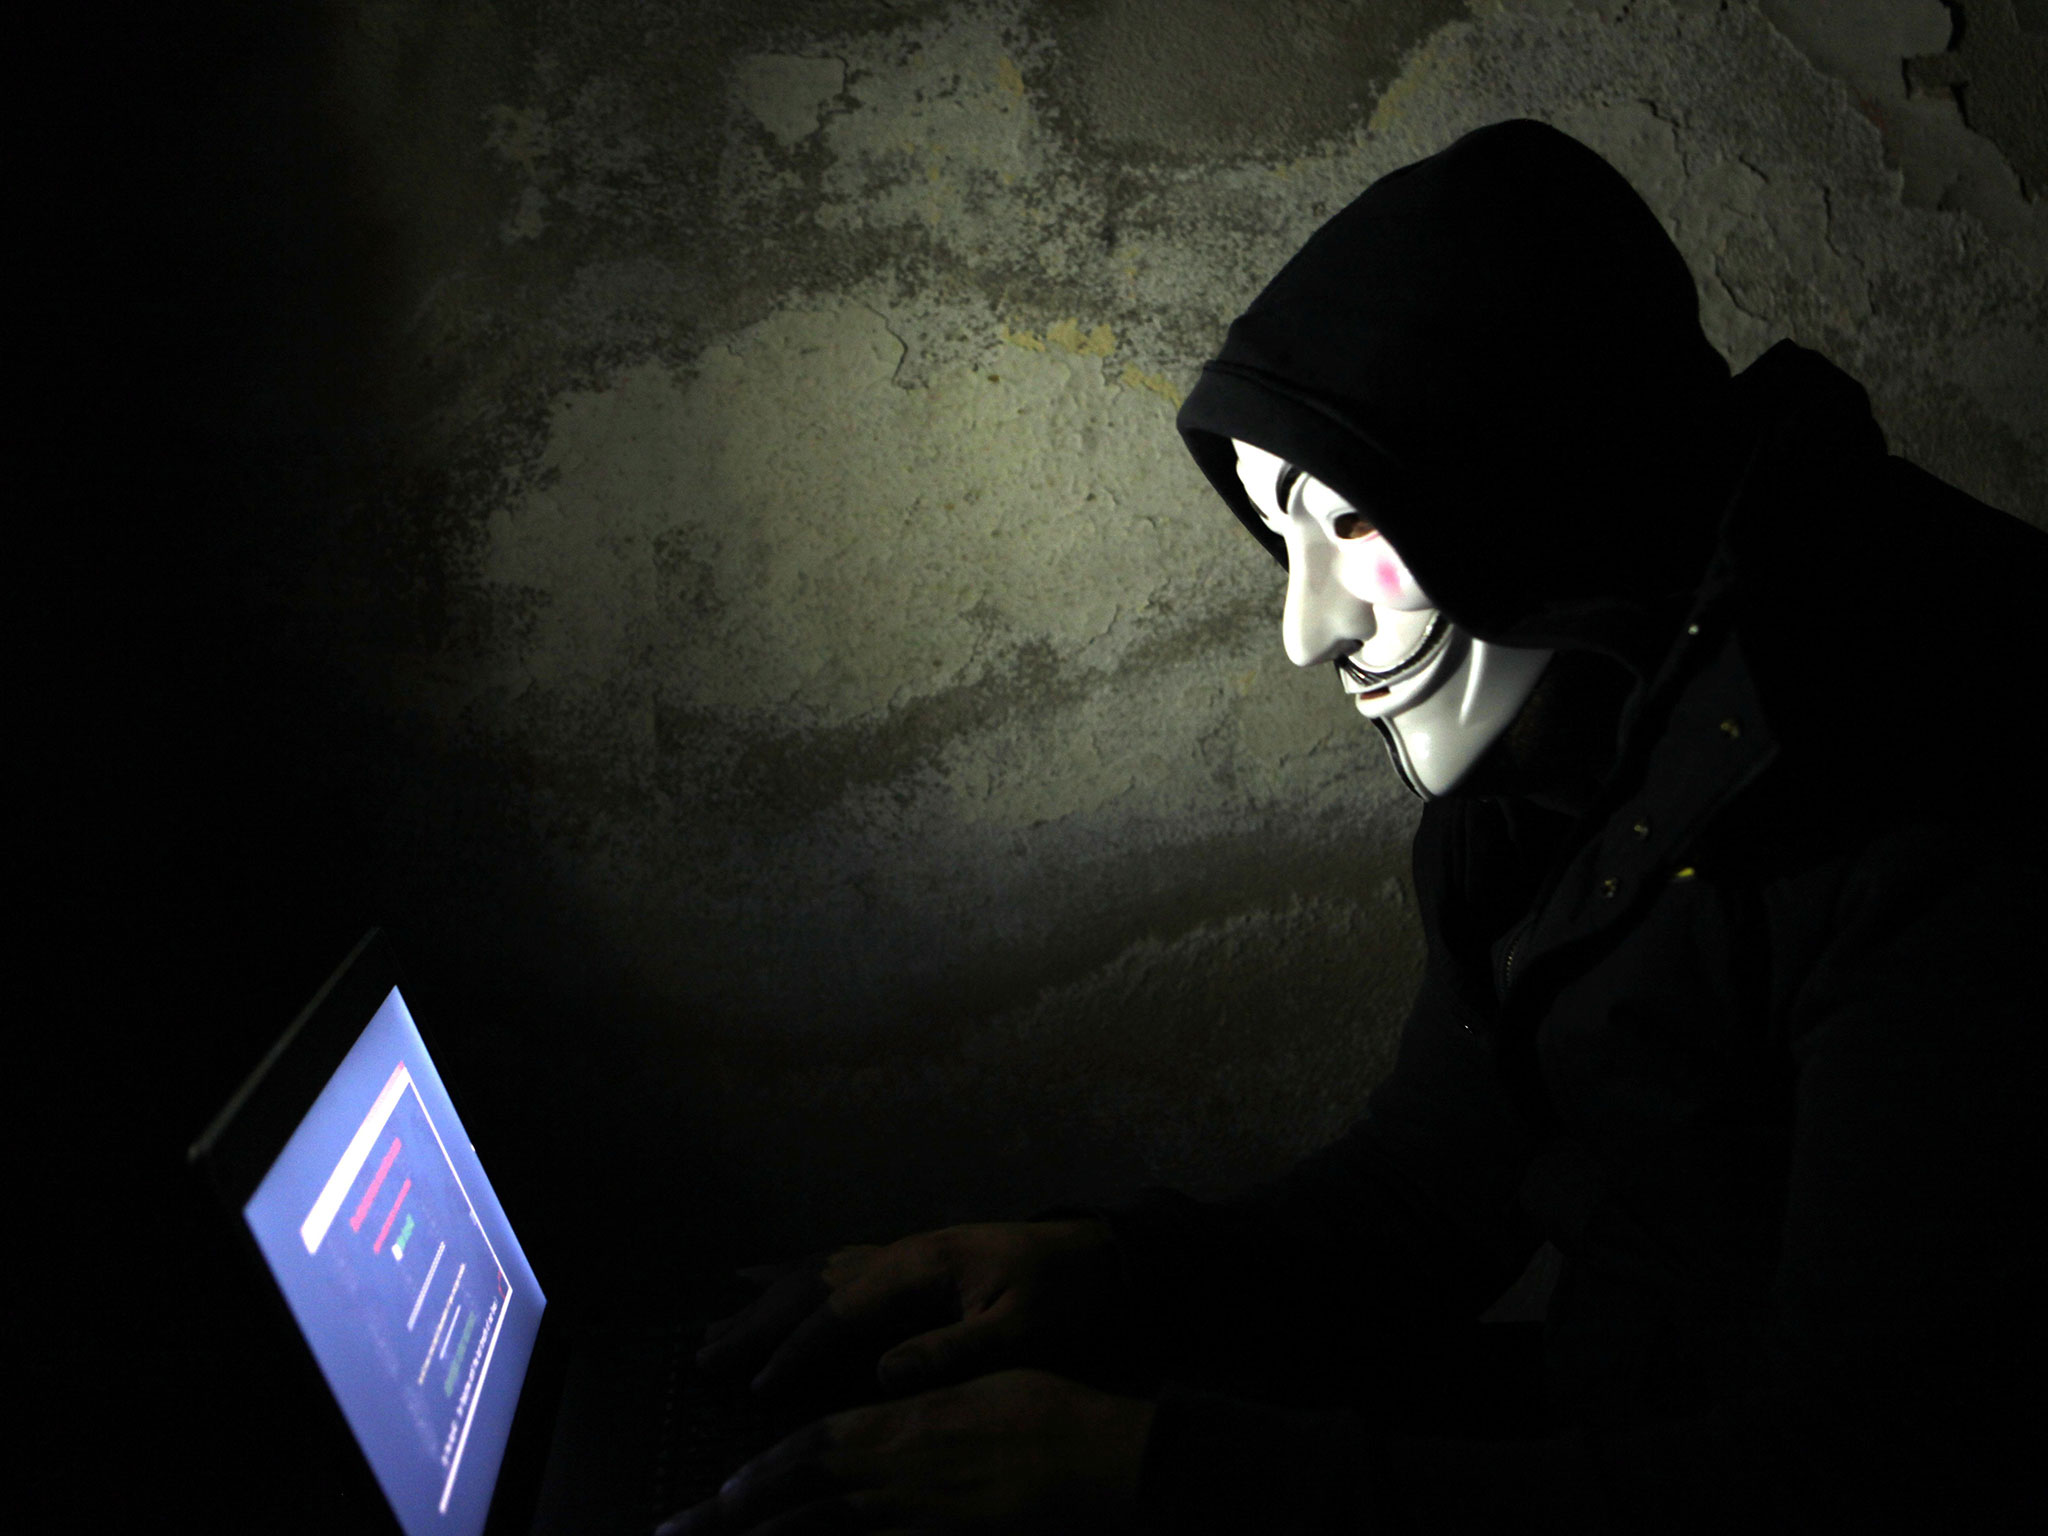 anonymous hackers video paris attacks 1